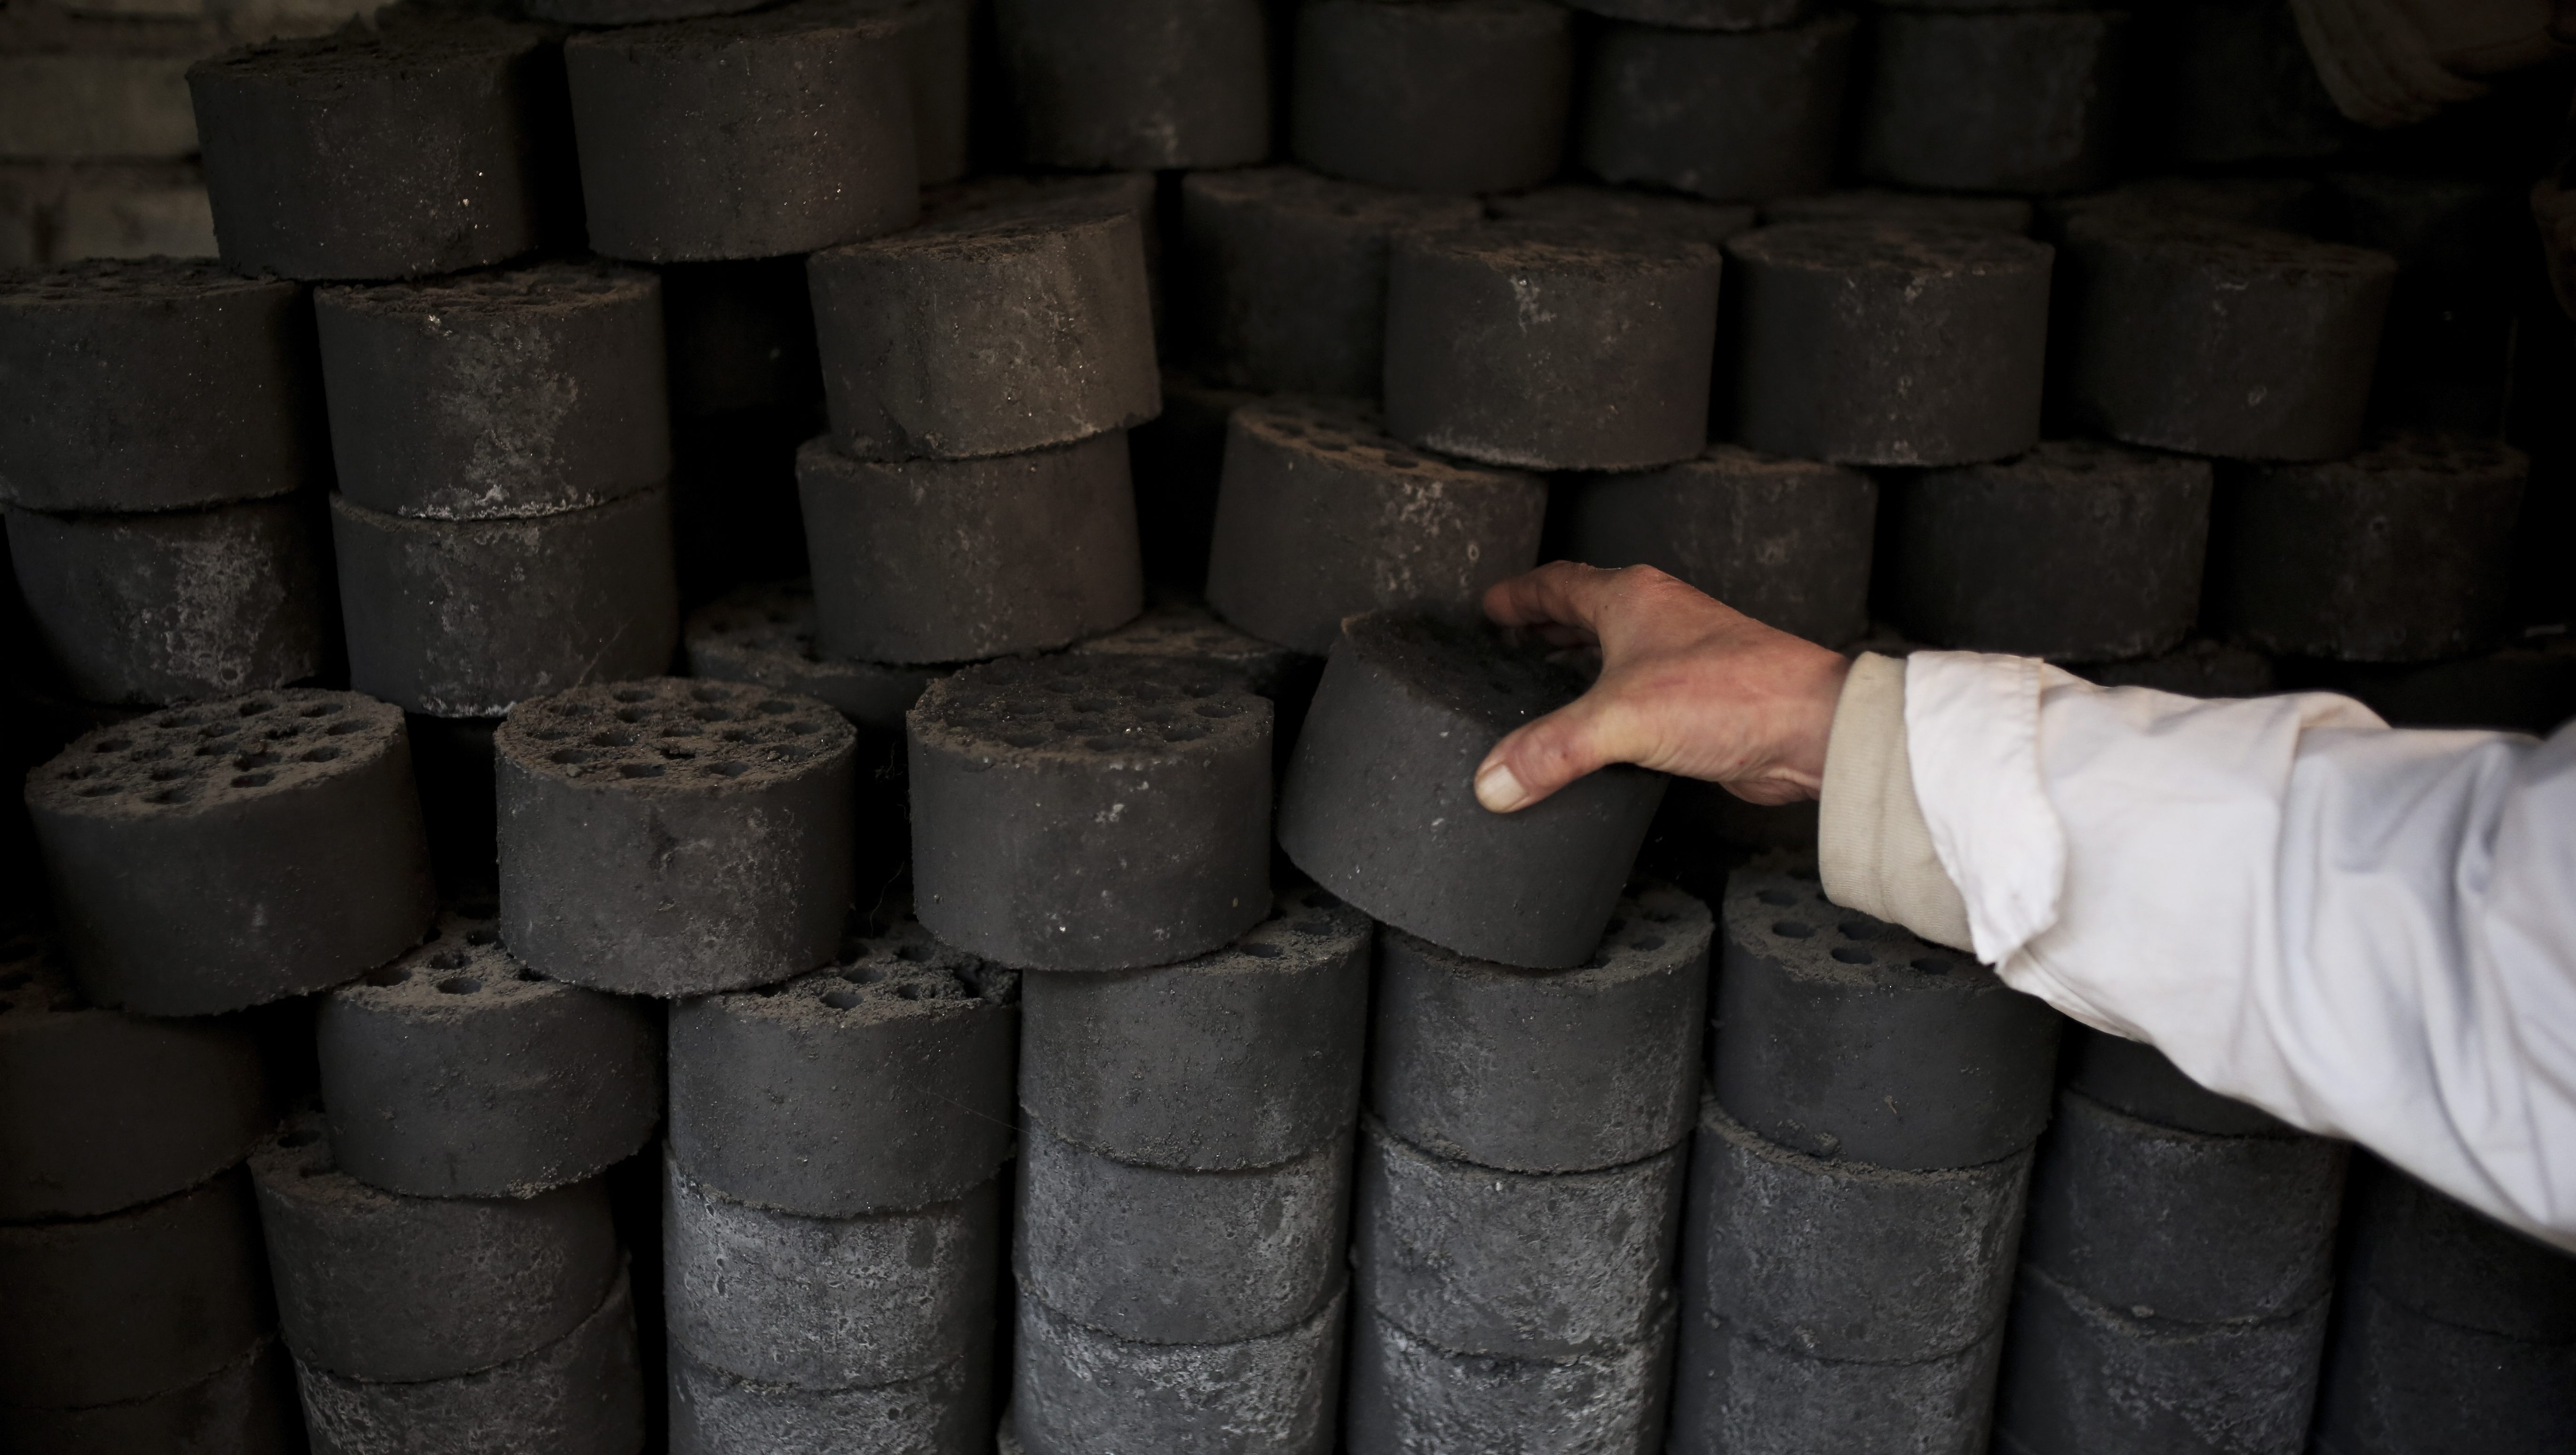 A man stocks up coal briquettes at his court yard, as many people living in old houses still rely on coal fire to heat up in the winter season, in Beijing, China Tuesday, Nov. 18, 2014. During APEC summit In China, U.S. President Barack Obama set an ambitious target for cutting U.S. emissions in a landmark deal in which China will also rein in its emissions. In Australia G20 summit, he pledged $3 billion to help poorer nations address changing temperatures. (AP Photo/Andy Wong)